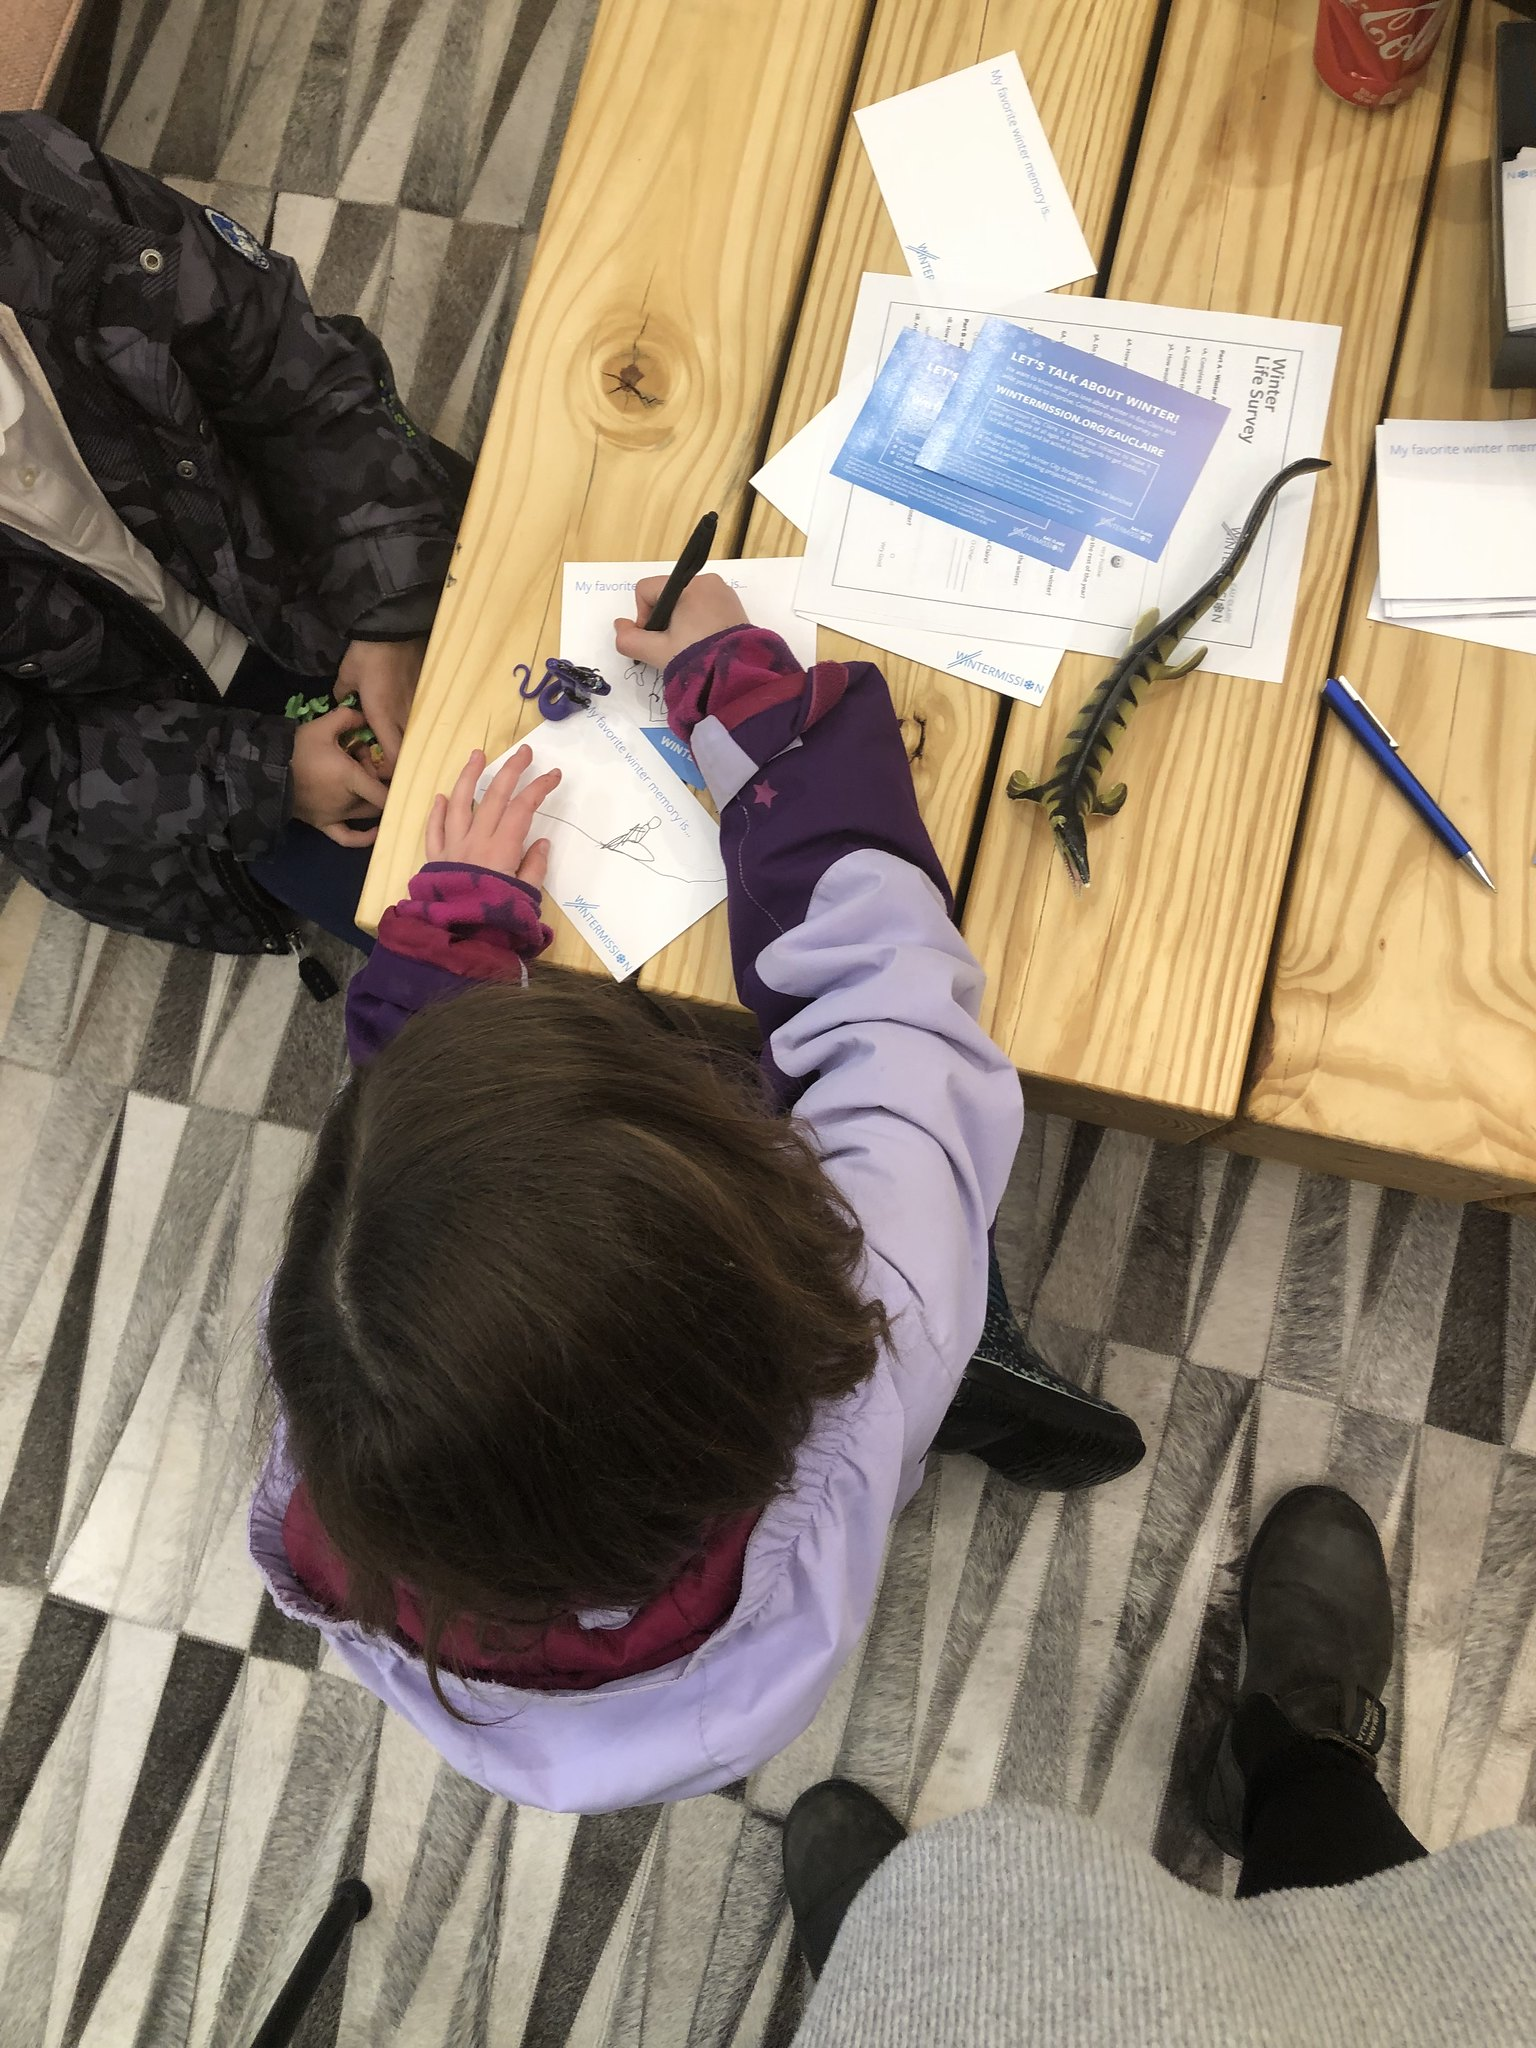 A child writing on a piece of paper citing at a table